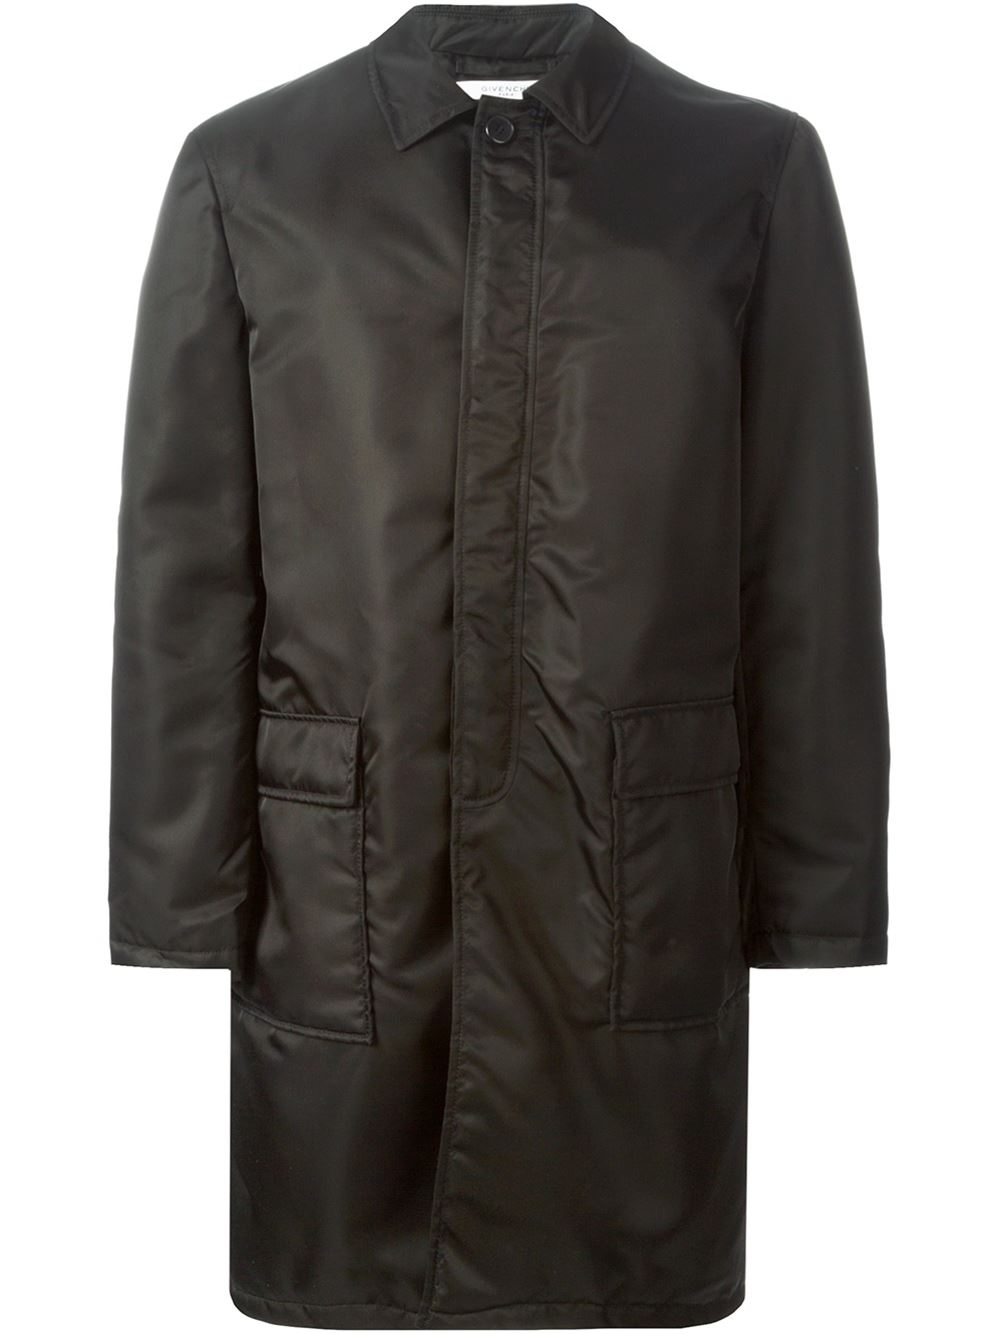 With a fatastic range of quilted jackets from Barbour; our protective and stylish quilted jackets for men are the best of the best on the market and are sure to satisfy your every need. Whether a shorter length or a more refined longer cut, a trench or overcoat can easily be dressed up or down.